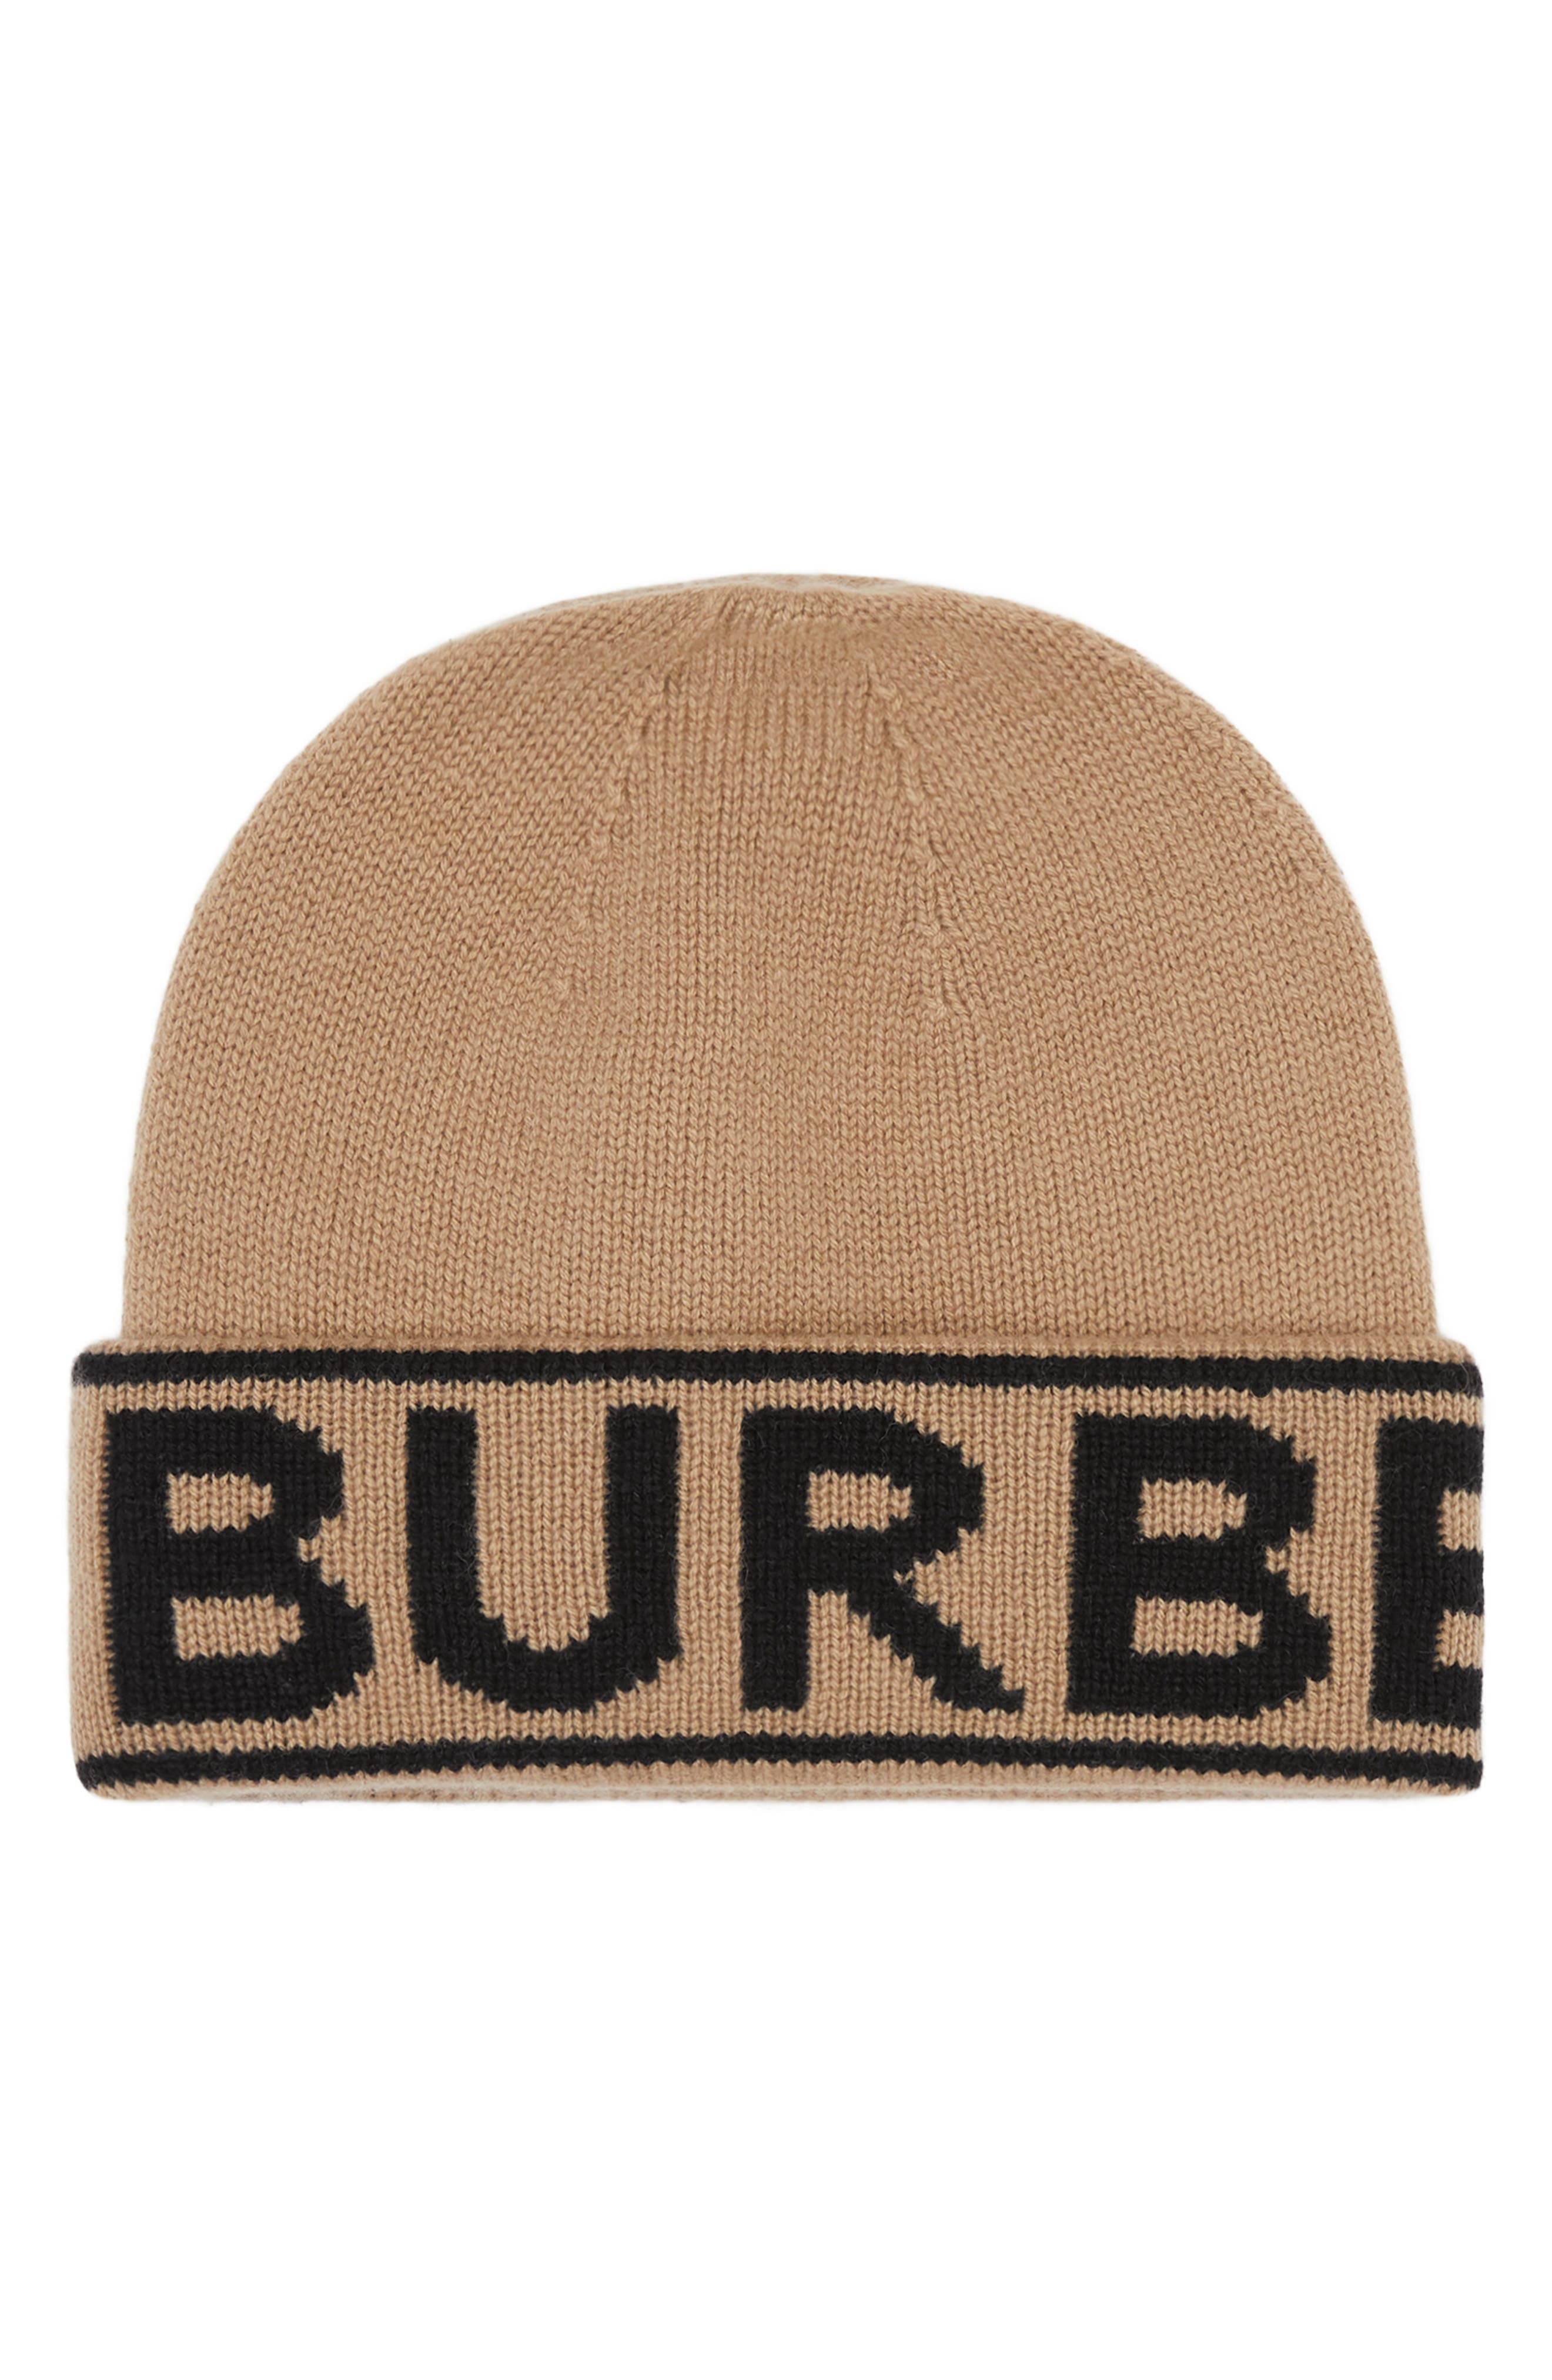 Burberry\\\'s refreshed logo details the cuff of this premium beanie knit from cozy-soft cashmere yarns. Style Name: Burberry Intarsia Logo Cashmere Hat. Style Number: 5948982. Available in stores.